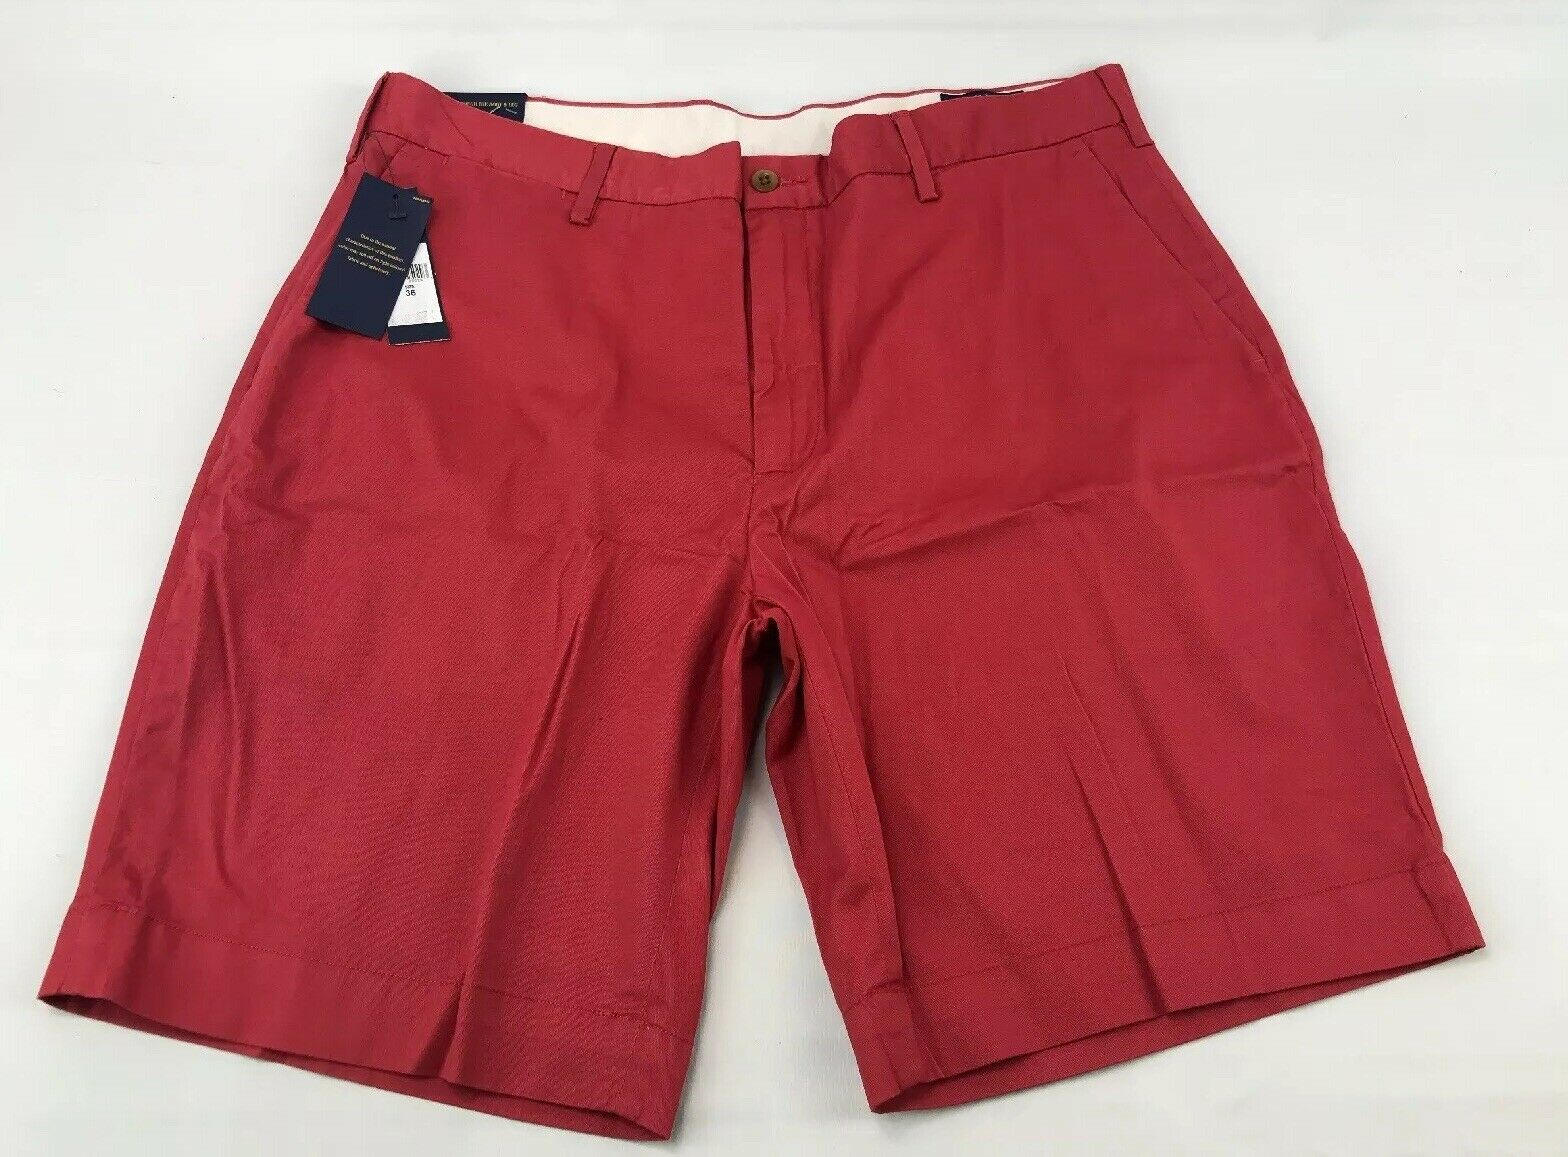 NWT Polo Ralph Lauren Size 36WClassic fit Shorts Light Red E1